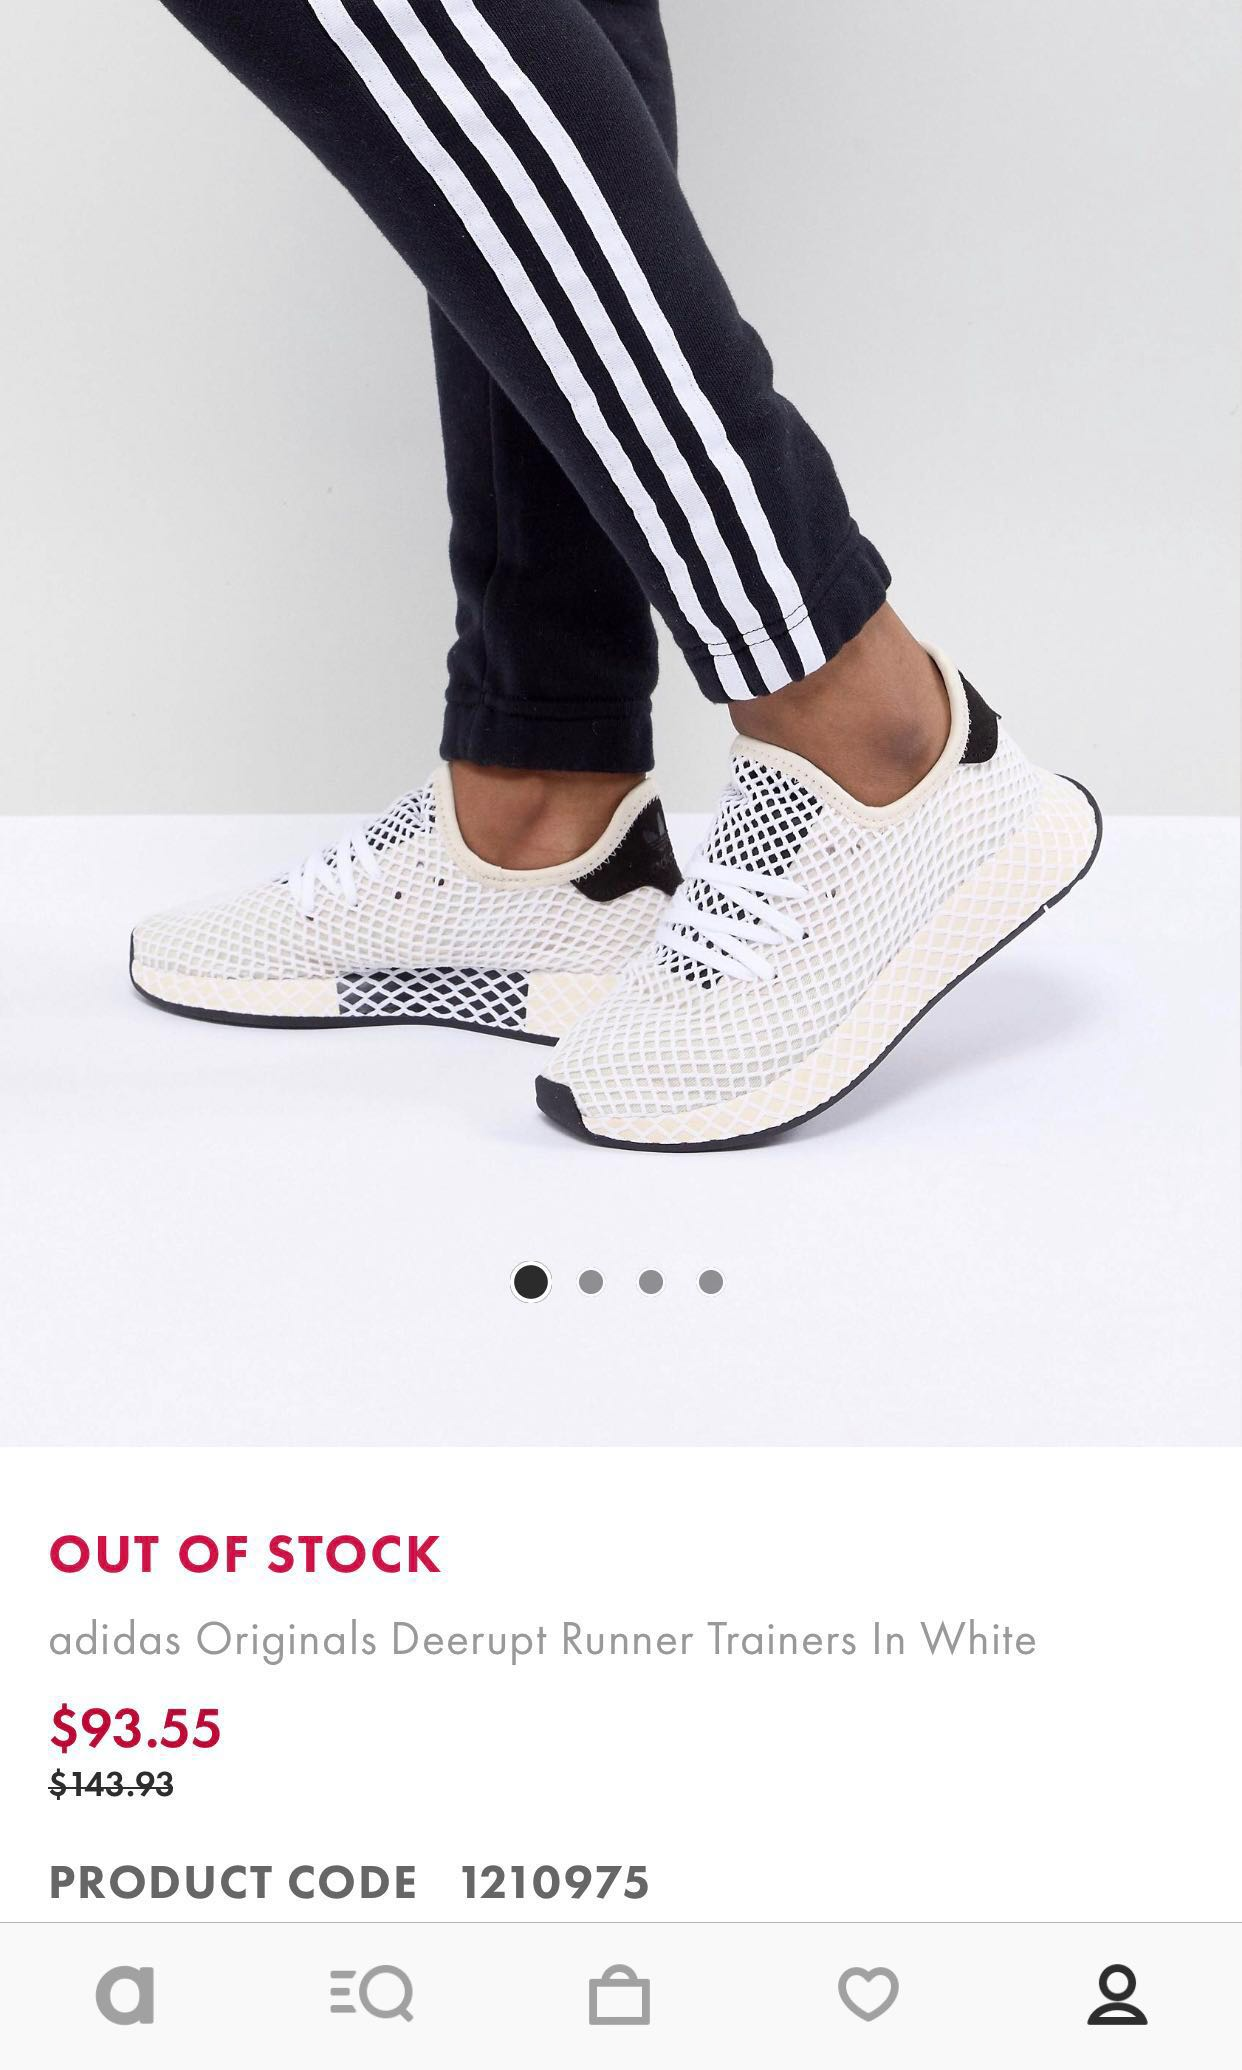 df4fce03e adidas original deerupt runner trainers in white